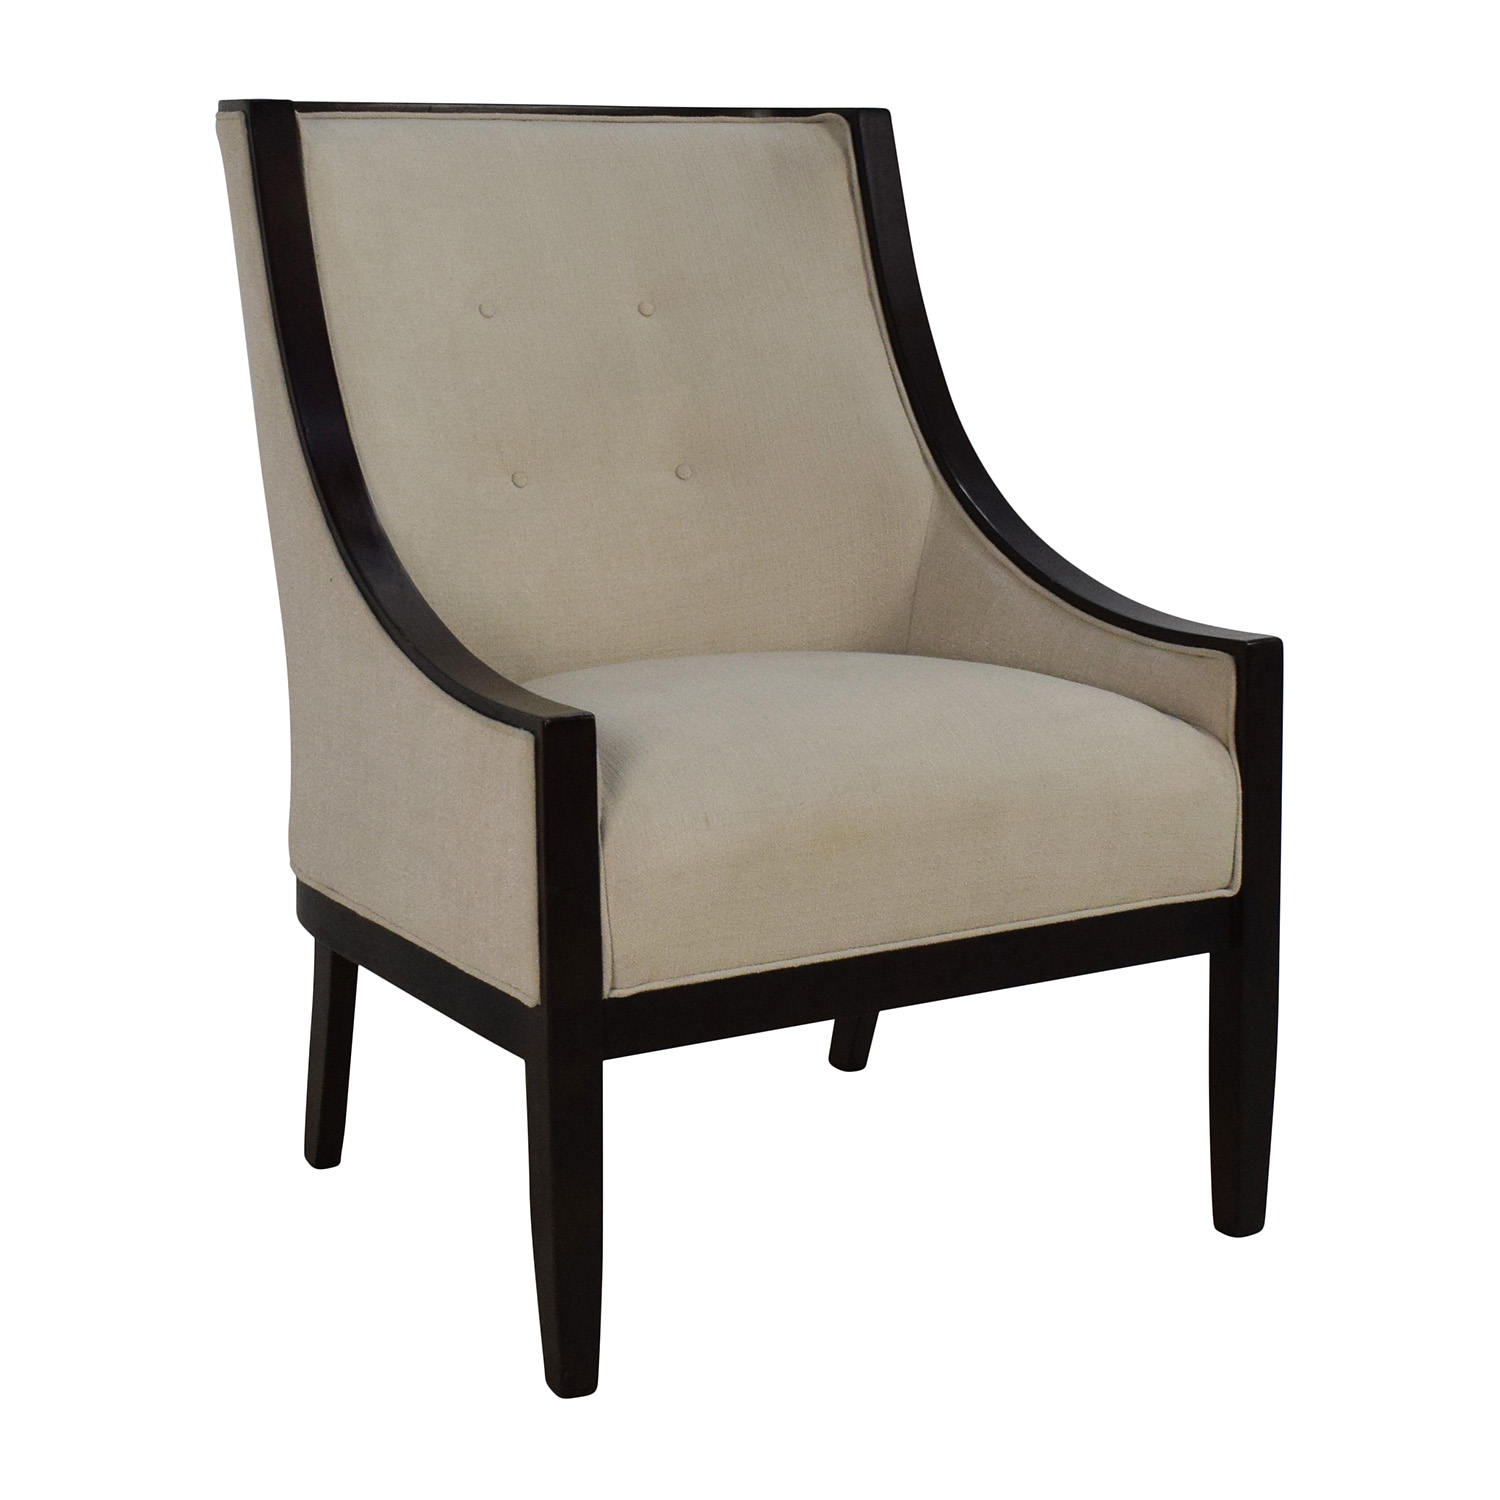 OFF Bloomingdales Bloomingdale s Tufted Cream High Back Chair